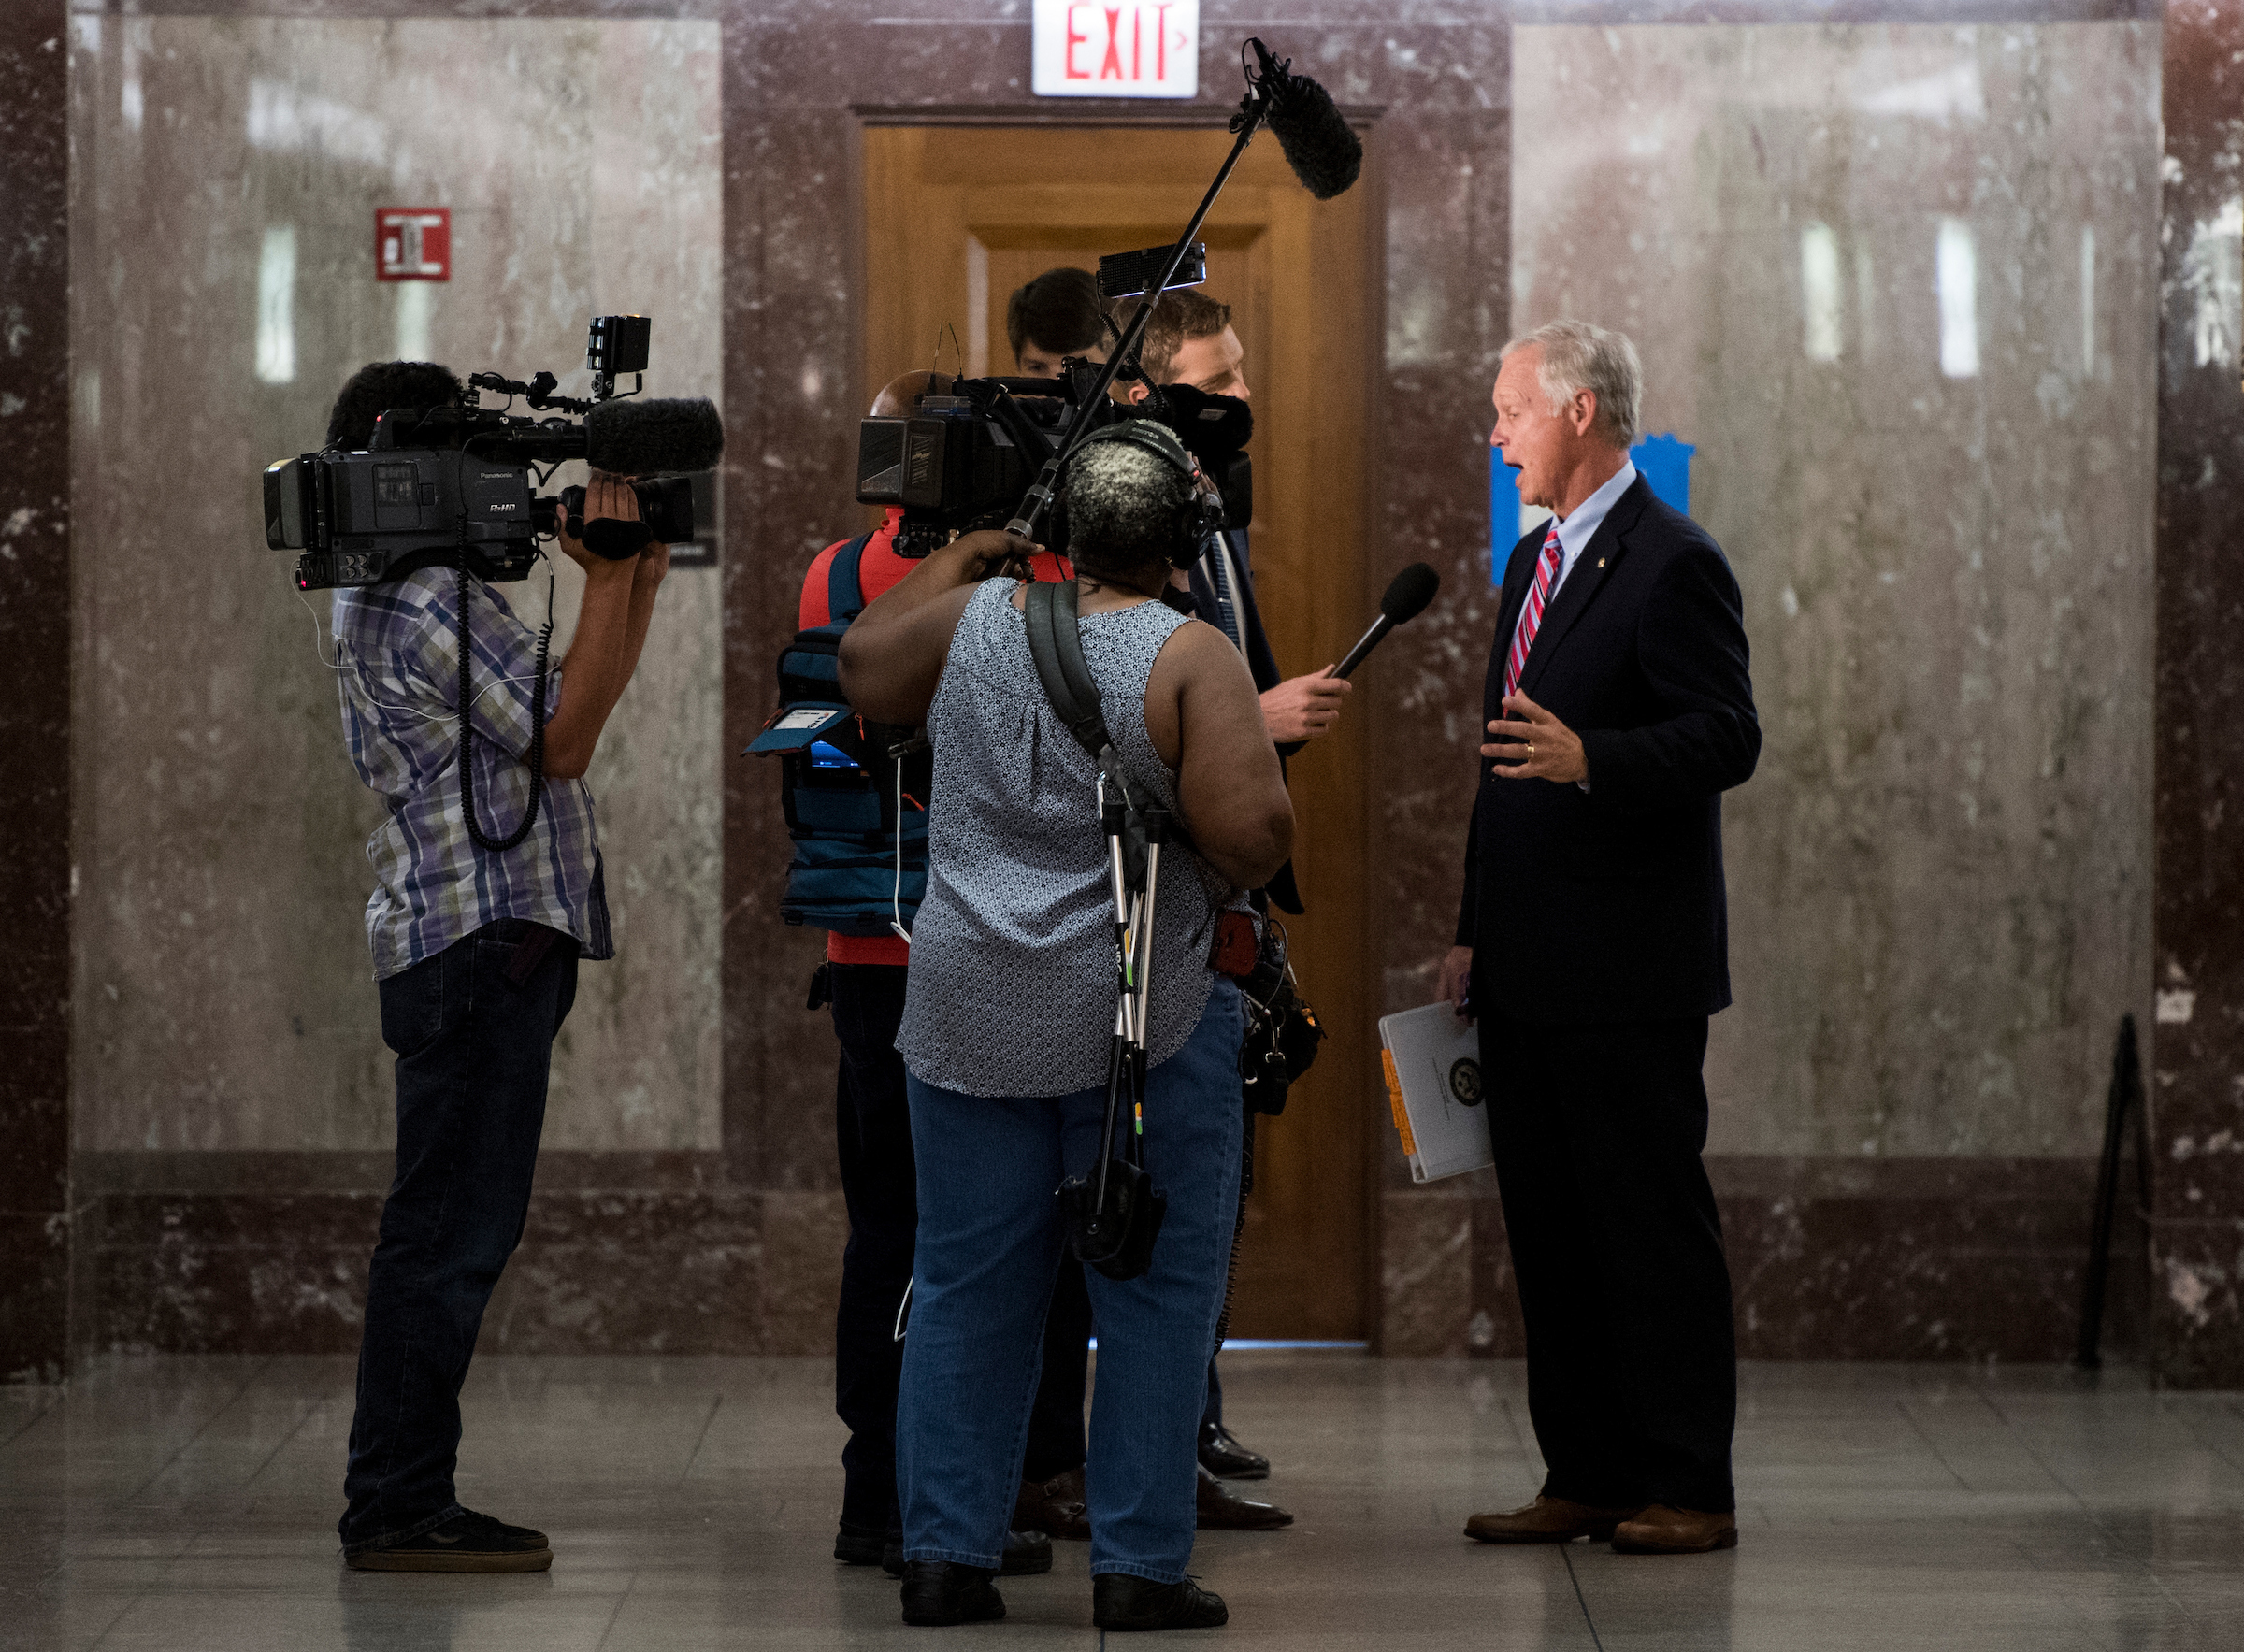 Sen. Ron Johnson, R-Wisc., stops to speak to media as he walks through the Dirksen Senate Office Building on Tuesday, Sept. 19, 2017. (Photo By Bill Clark/CQ Roll Call)